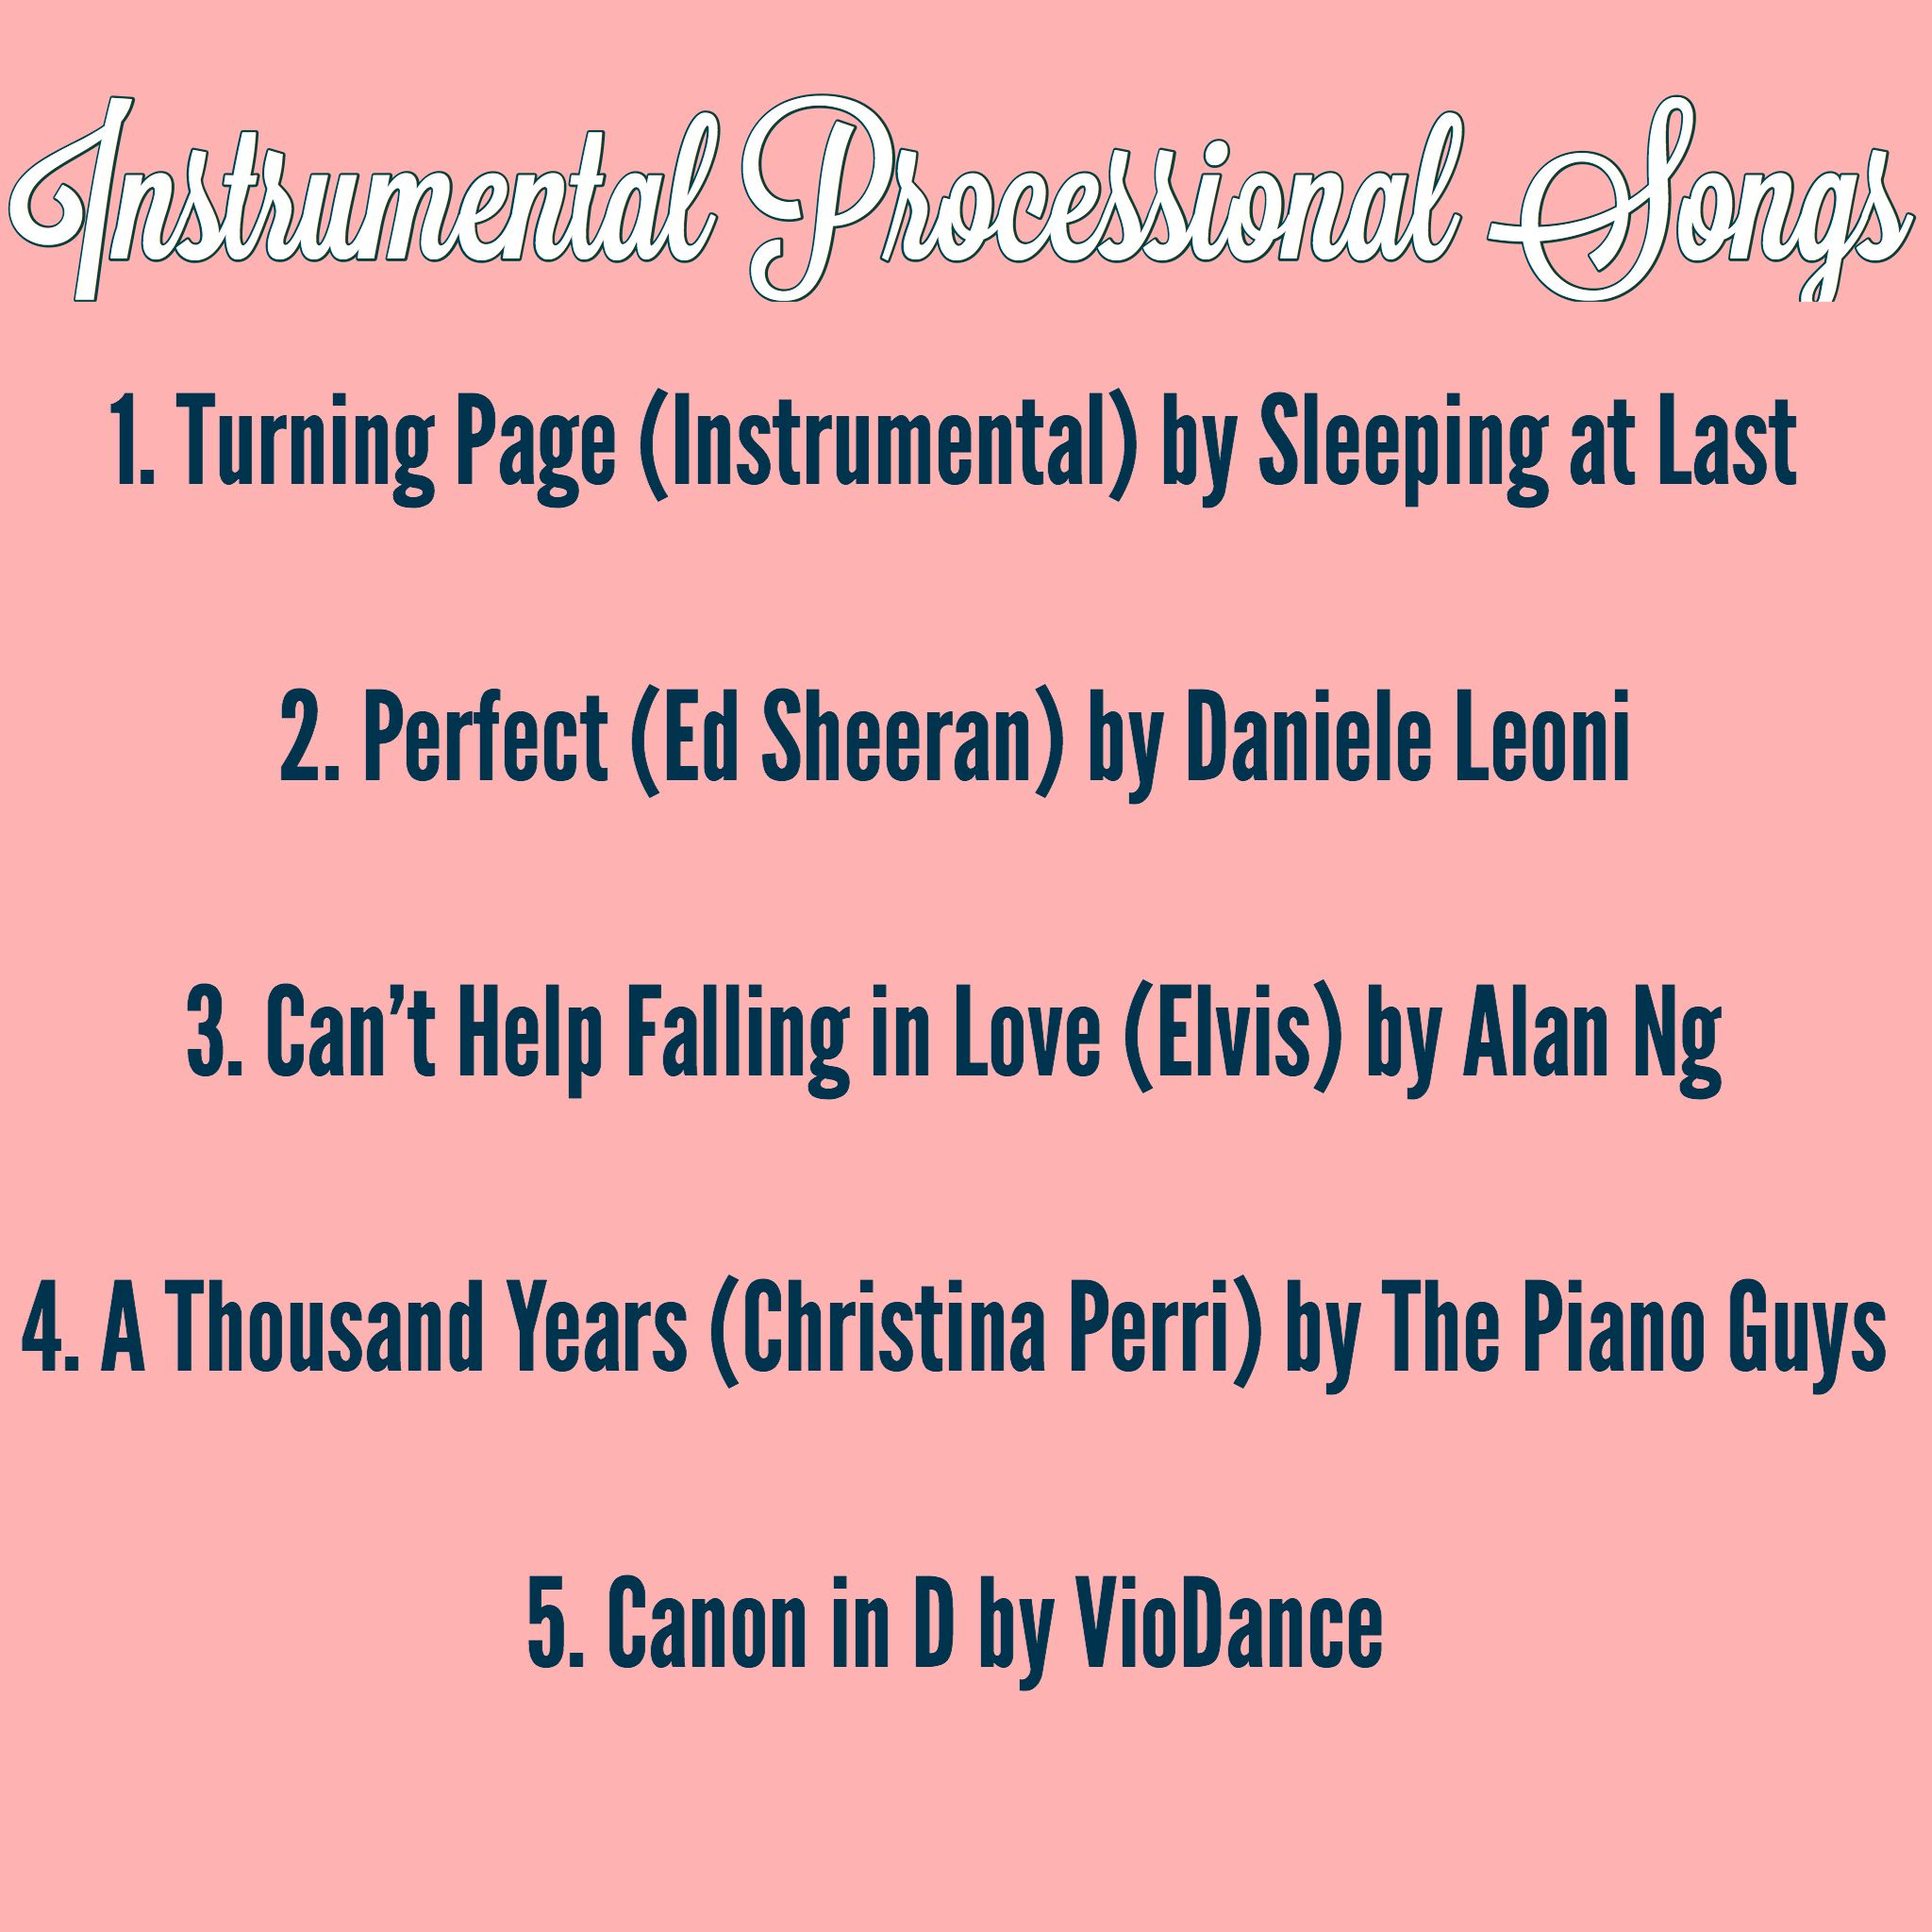 Instrumental Wedding Ceremony Songs: Beautiful Instrumental Songs To Walk Down The Isle To